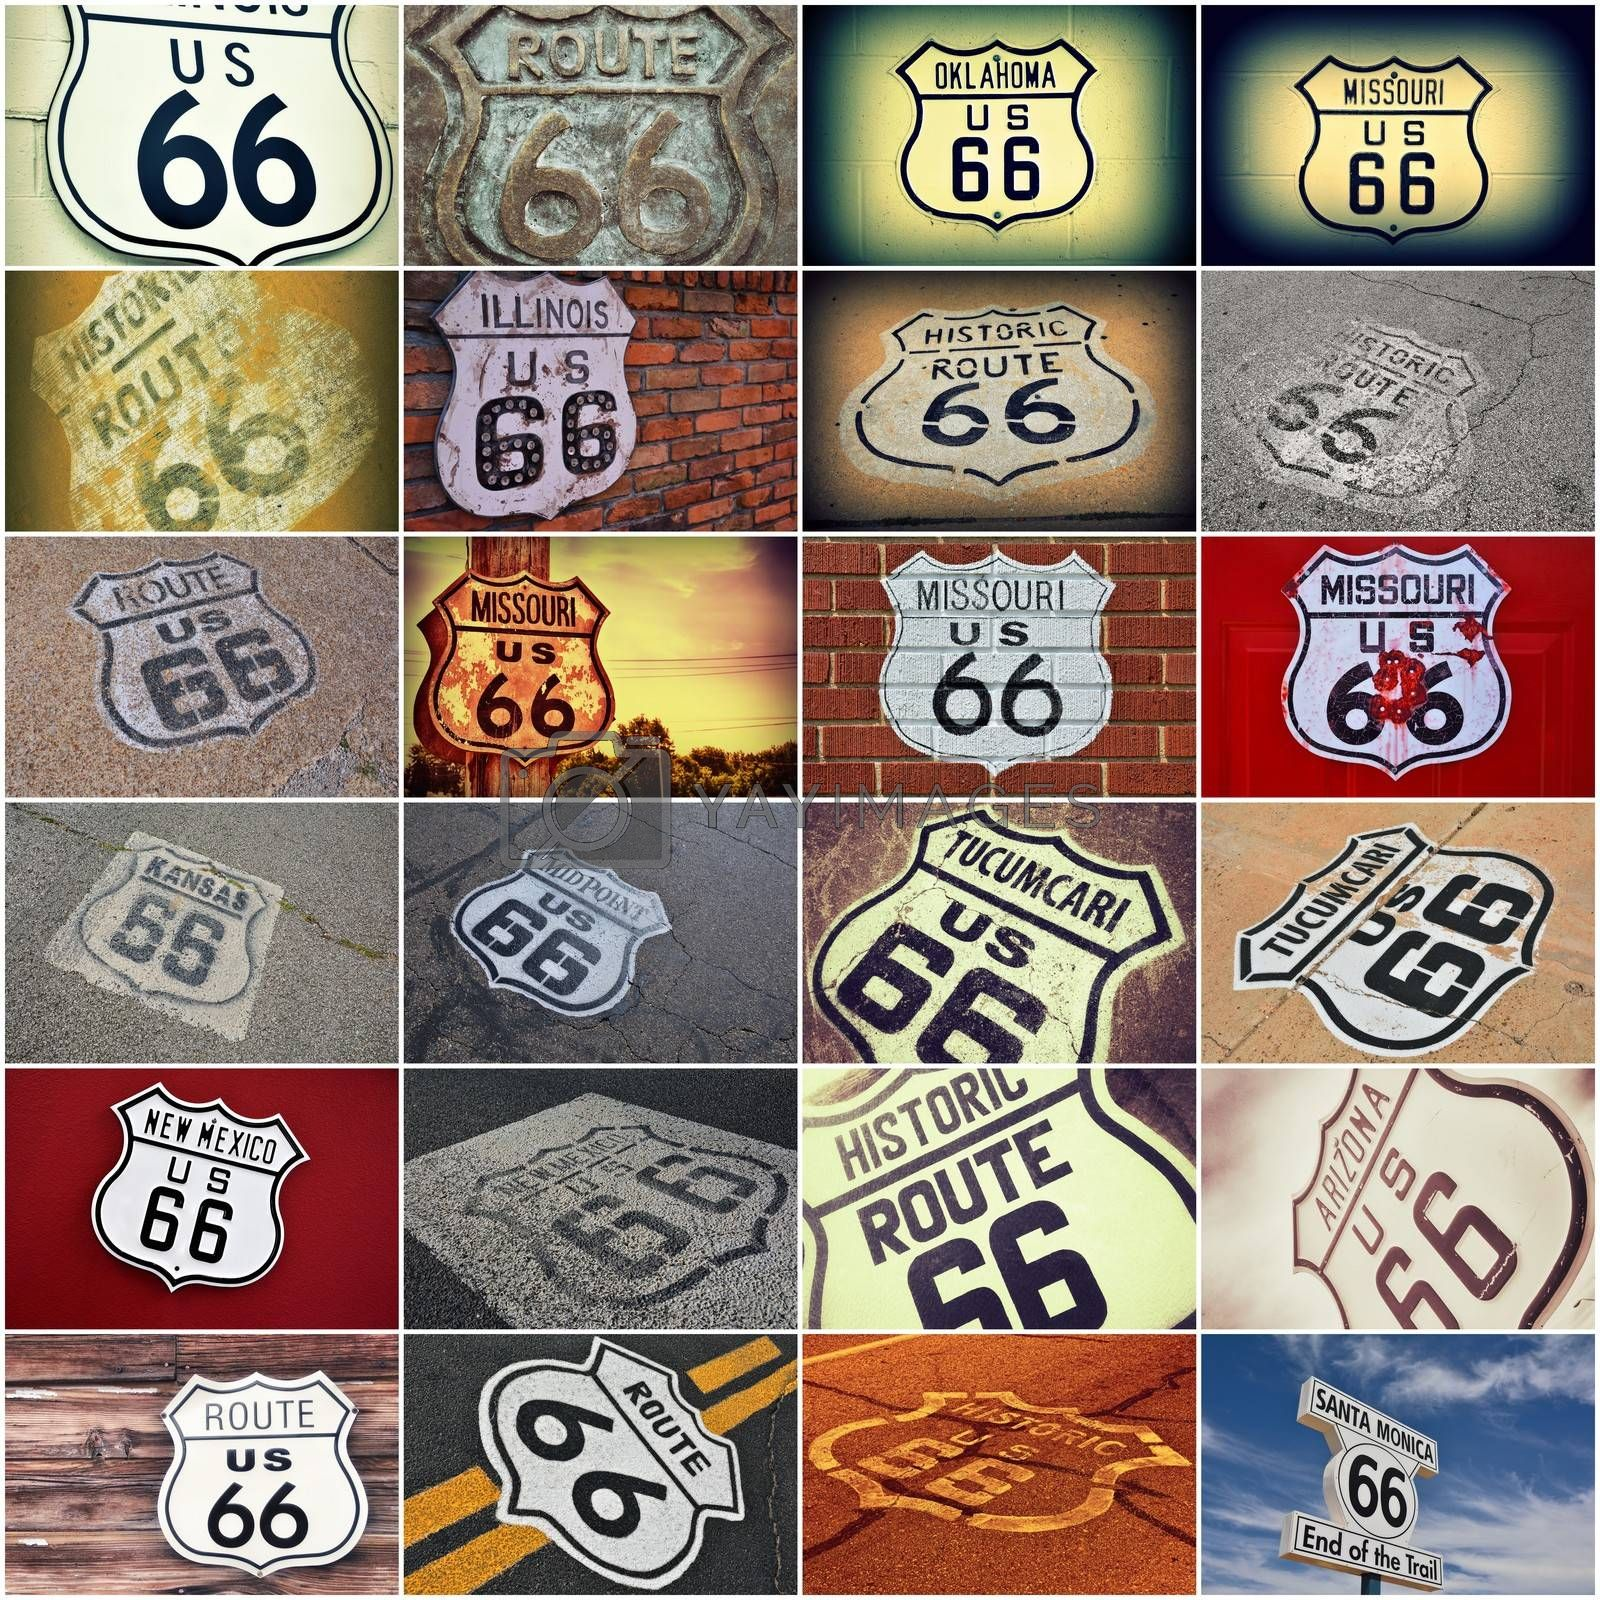 Historic U.S. old Route 66 signs.